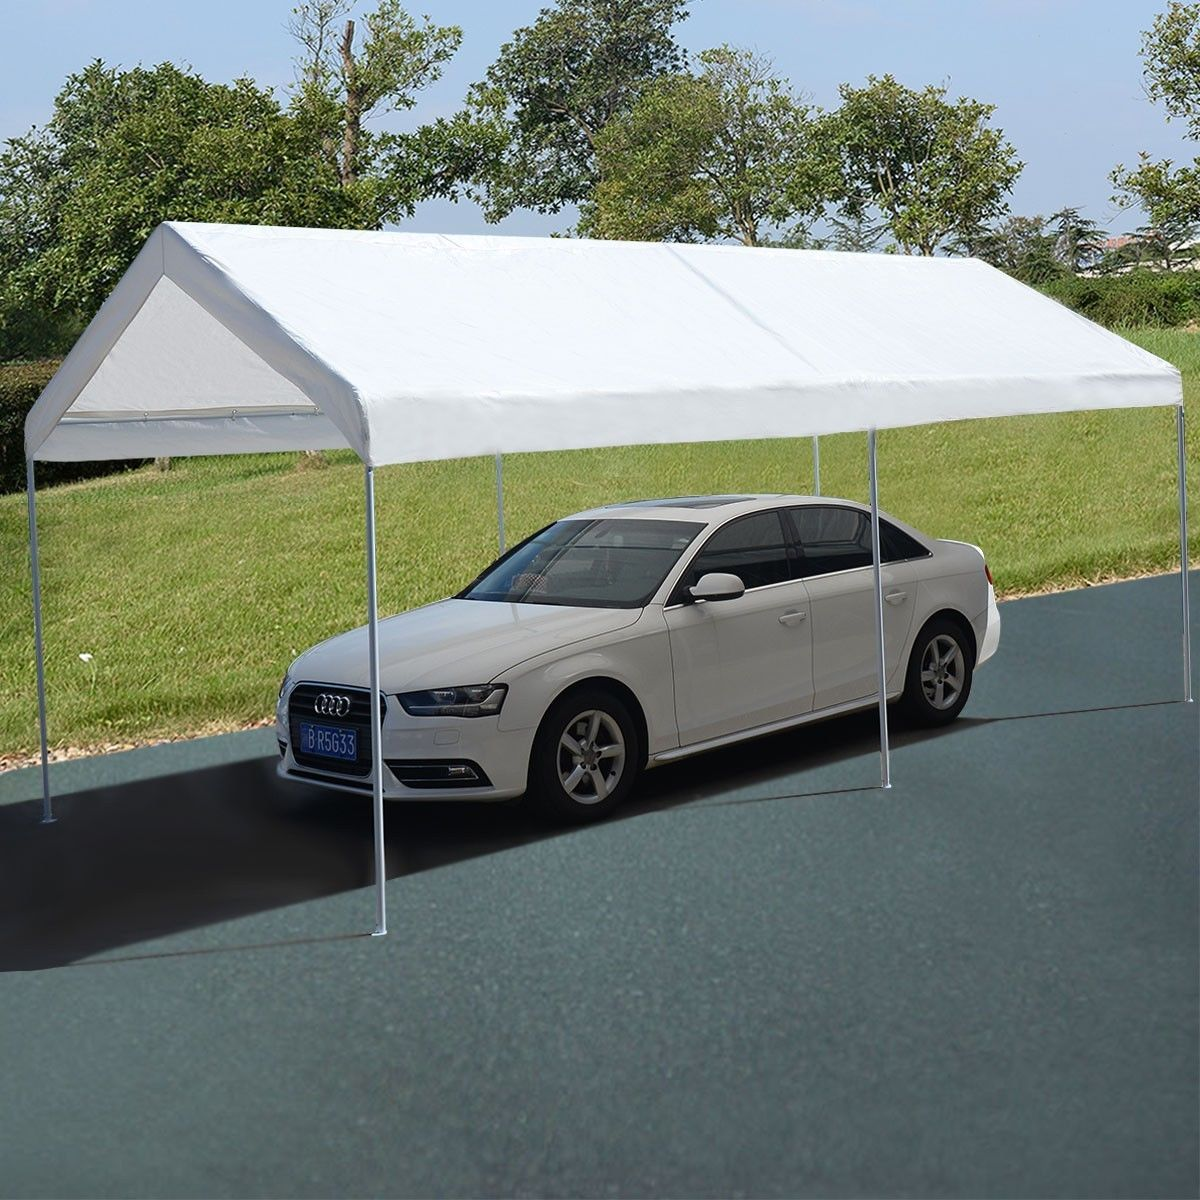 10 X 20 Steel Frame Portable Car Canopy Shelter Canopy Shelter Car Canopy Carport Tent